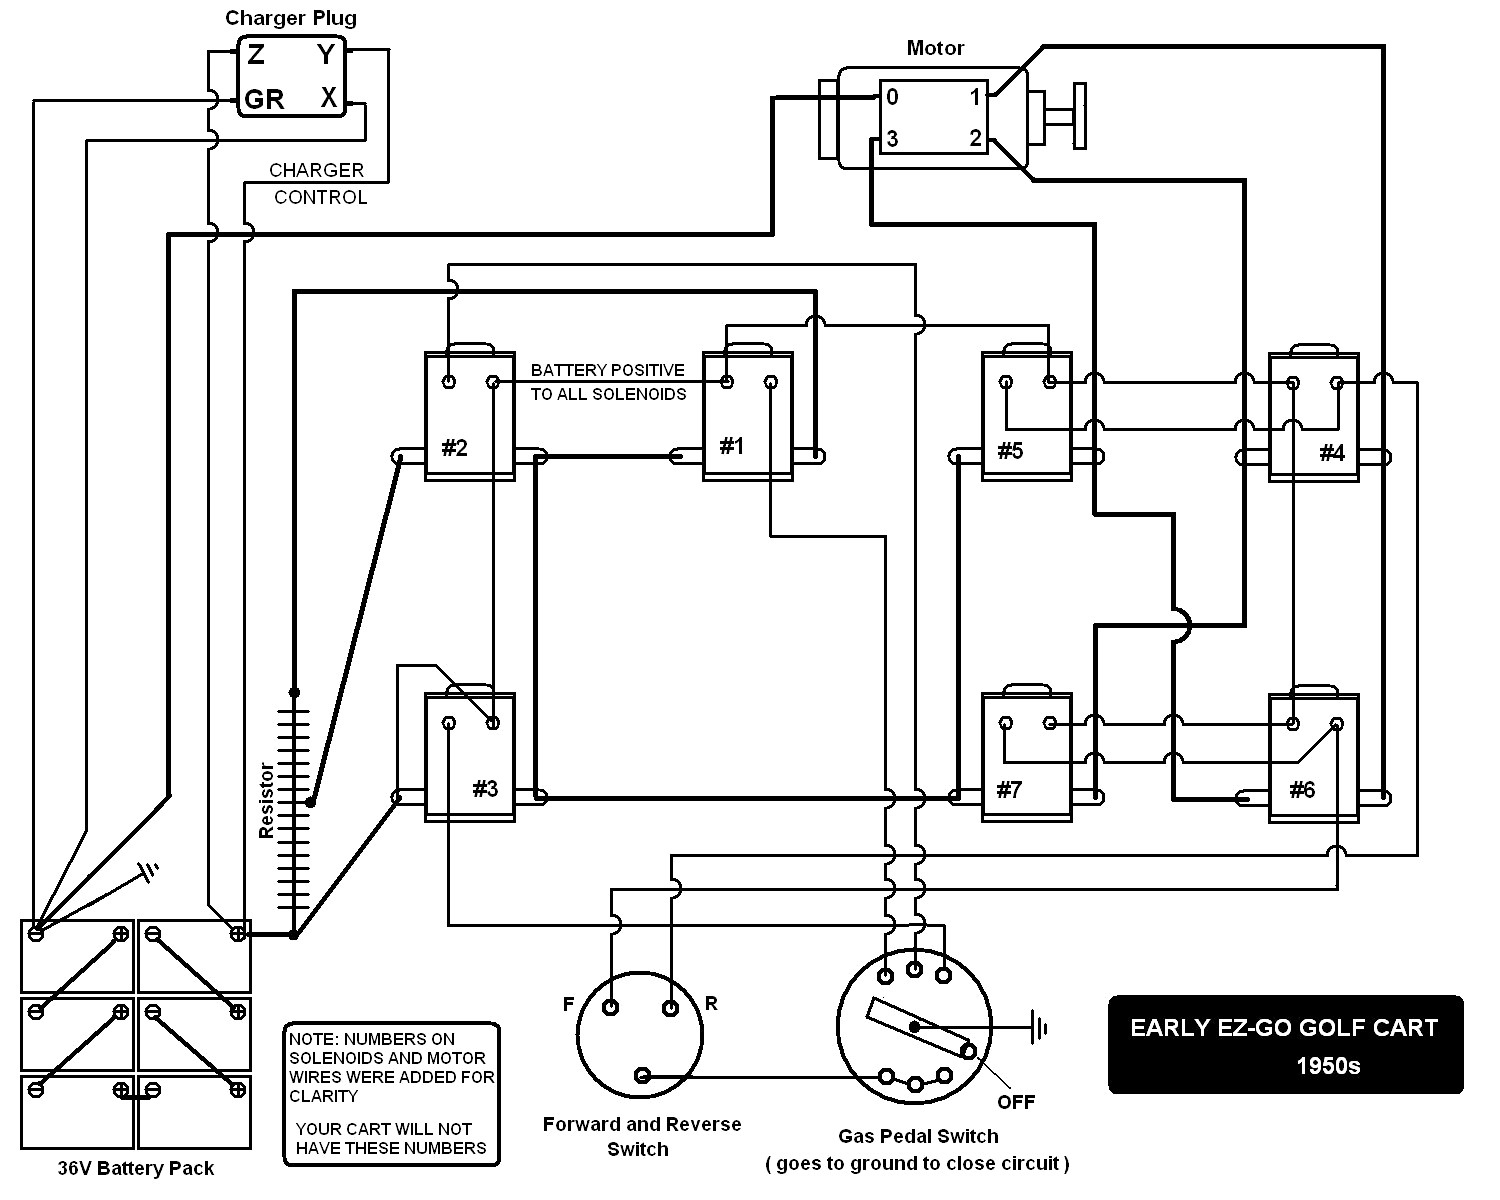 Ez Go 36 Volt Wiring - Data Wiring Diagram Today - Ezgo 36 Volt Wiring Diagram